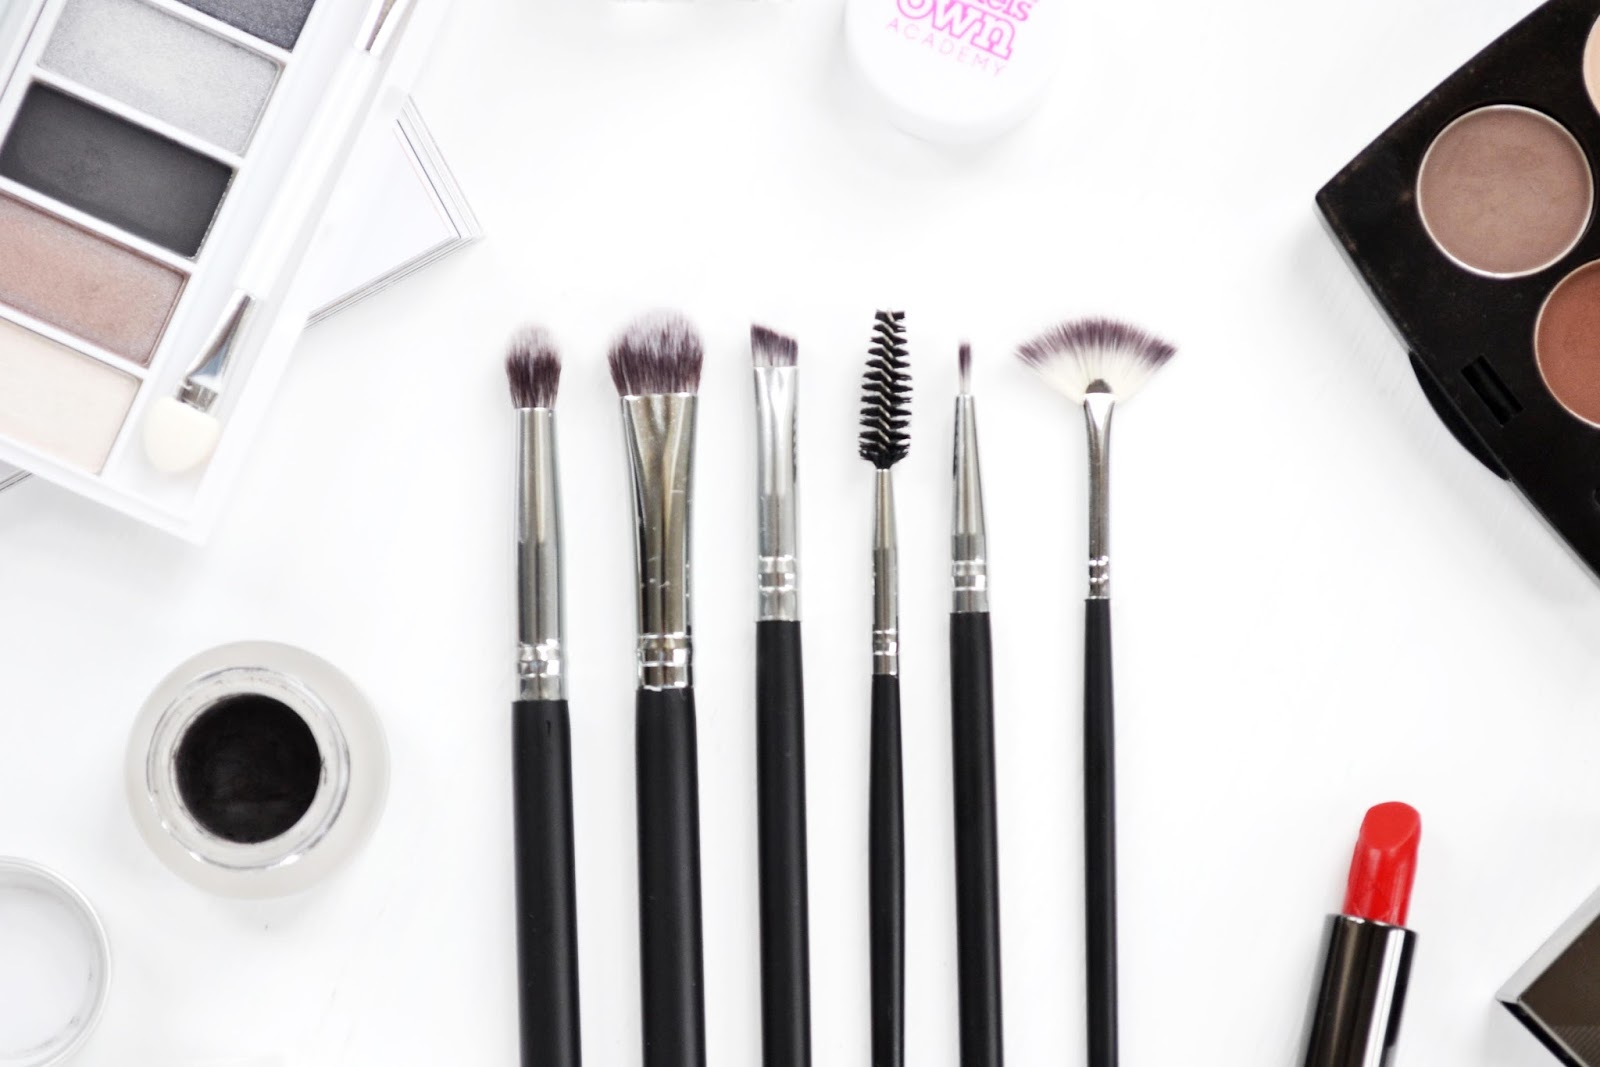 crownbrush brush set for eye make up